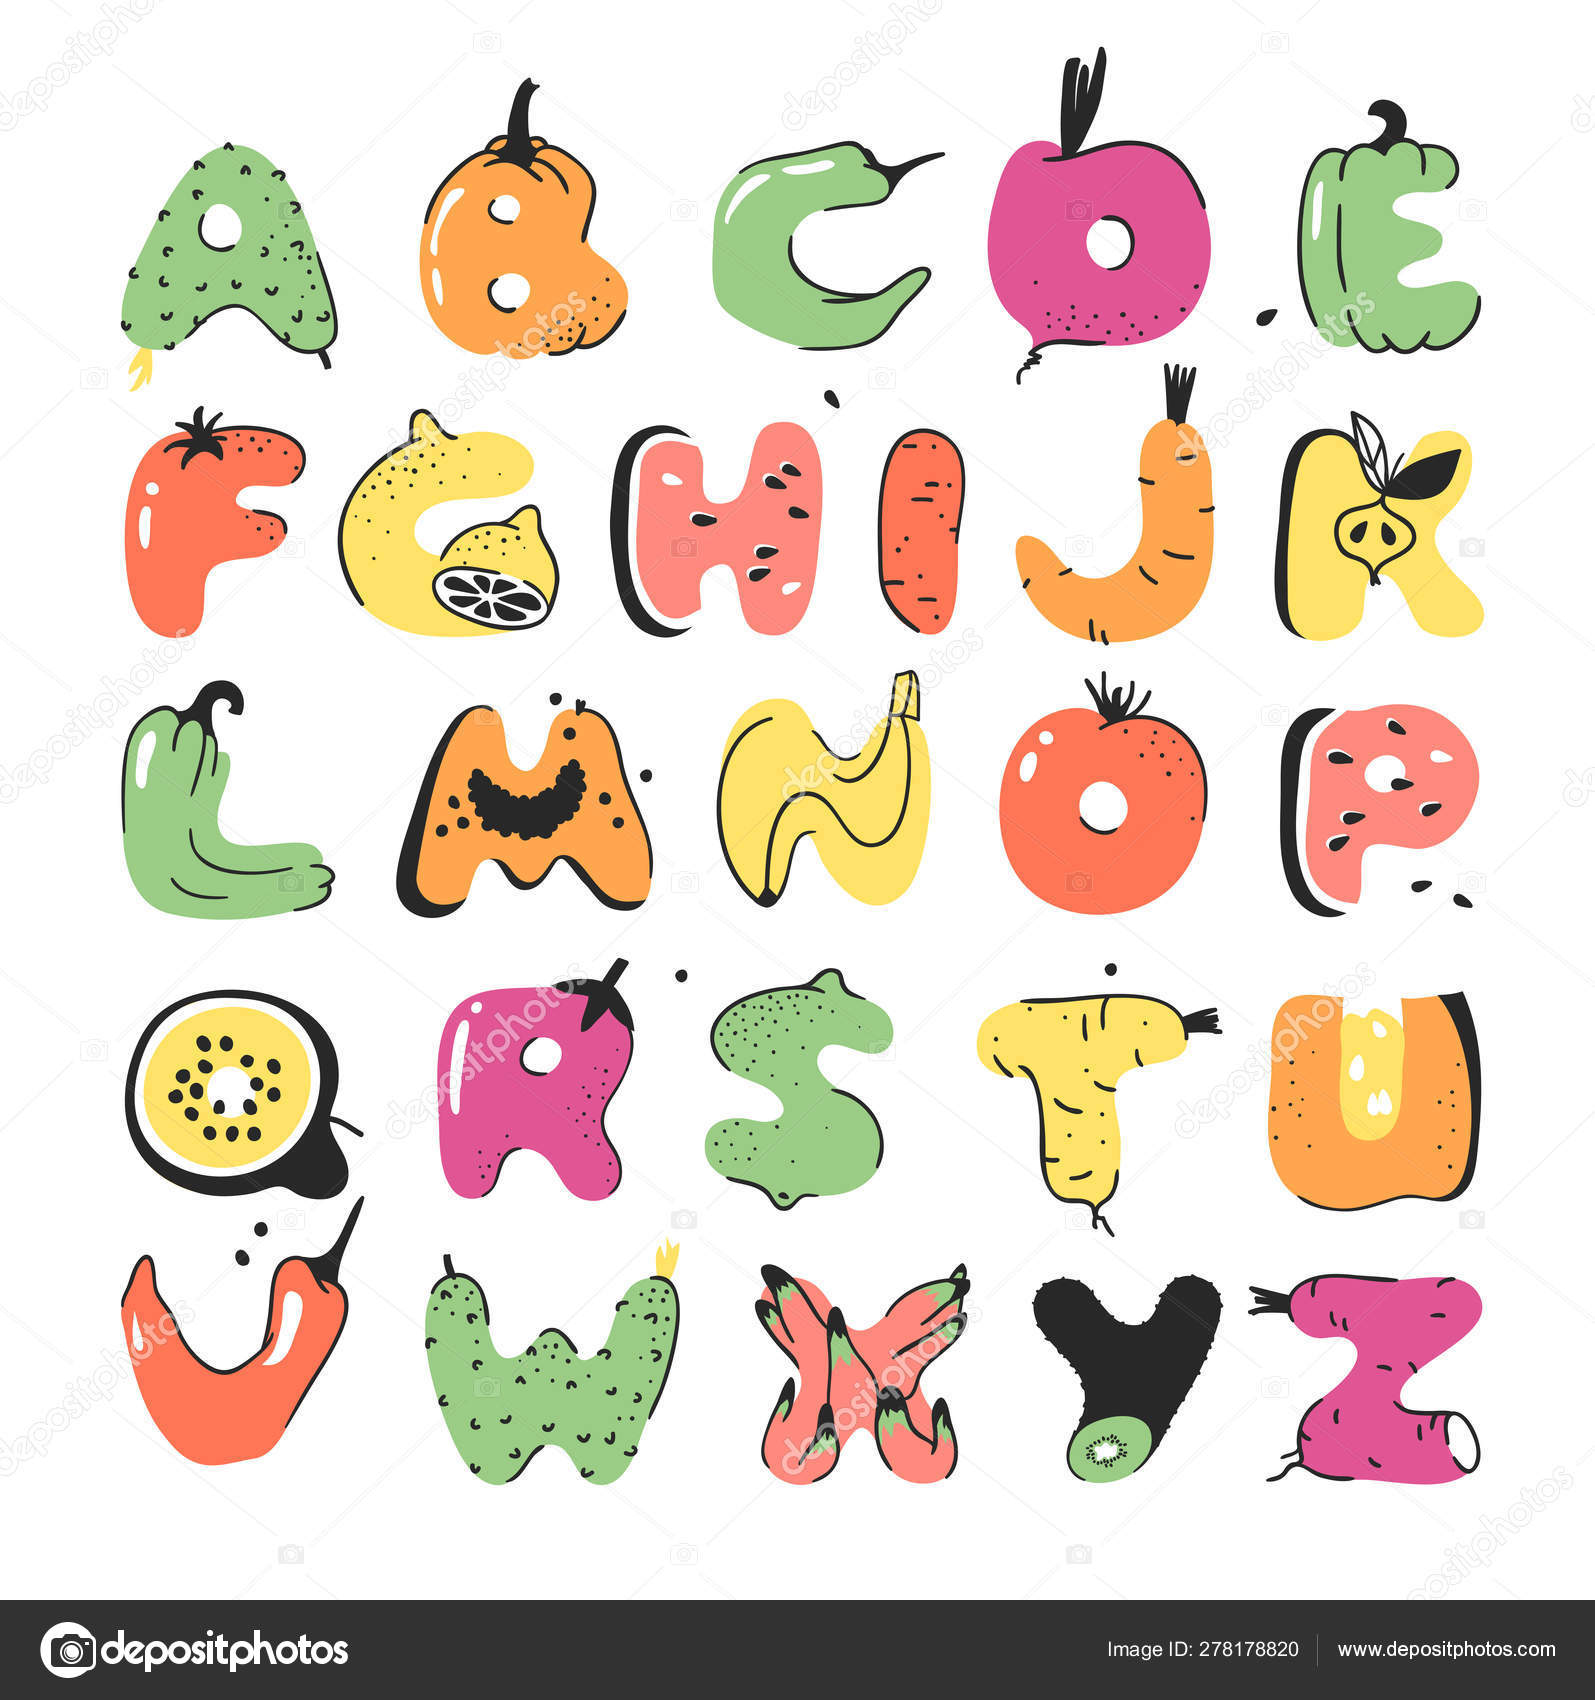 Cartoon Vector Illustration Vegetables And Fruits Abc Hand